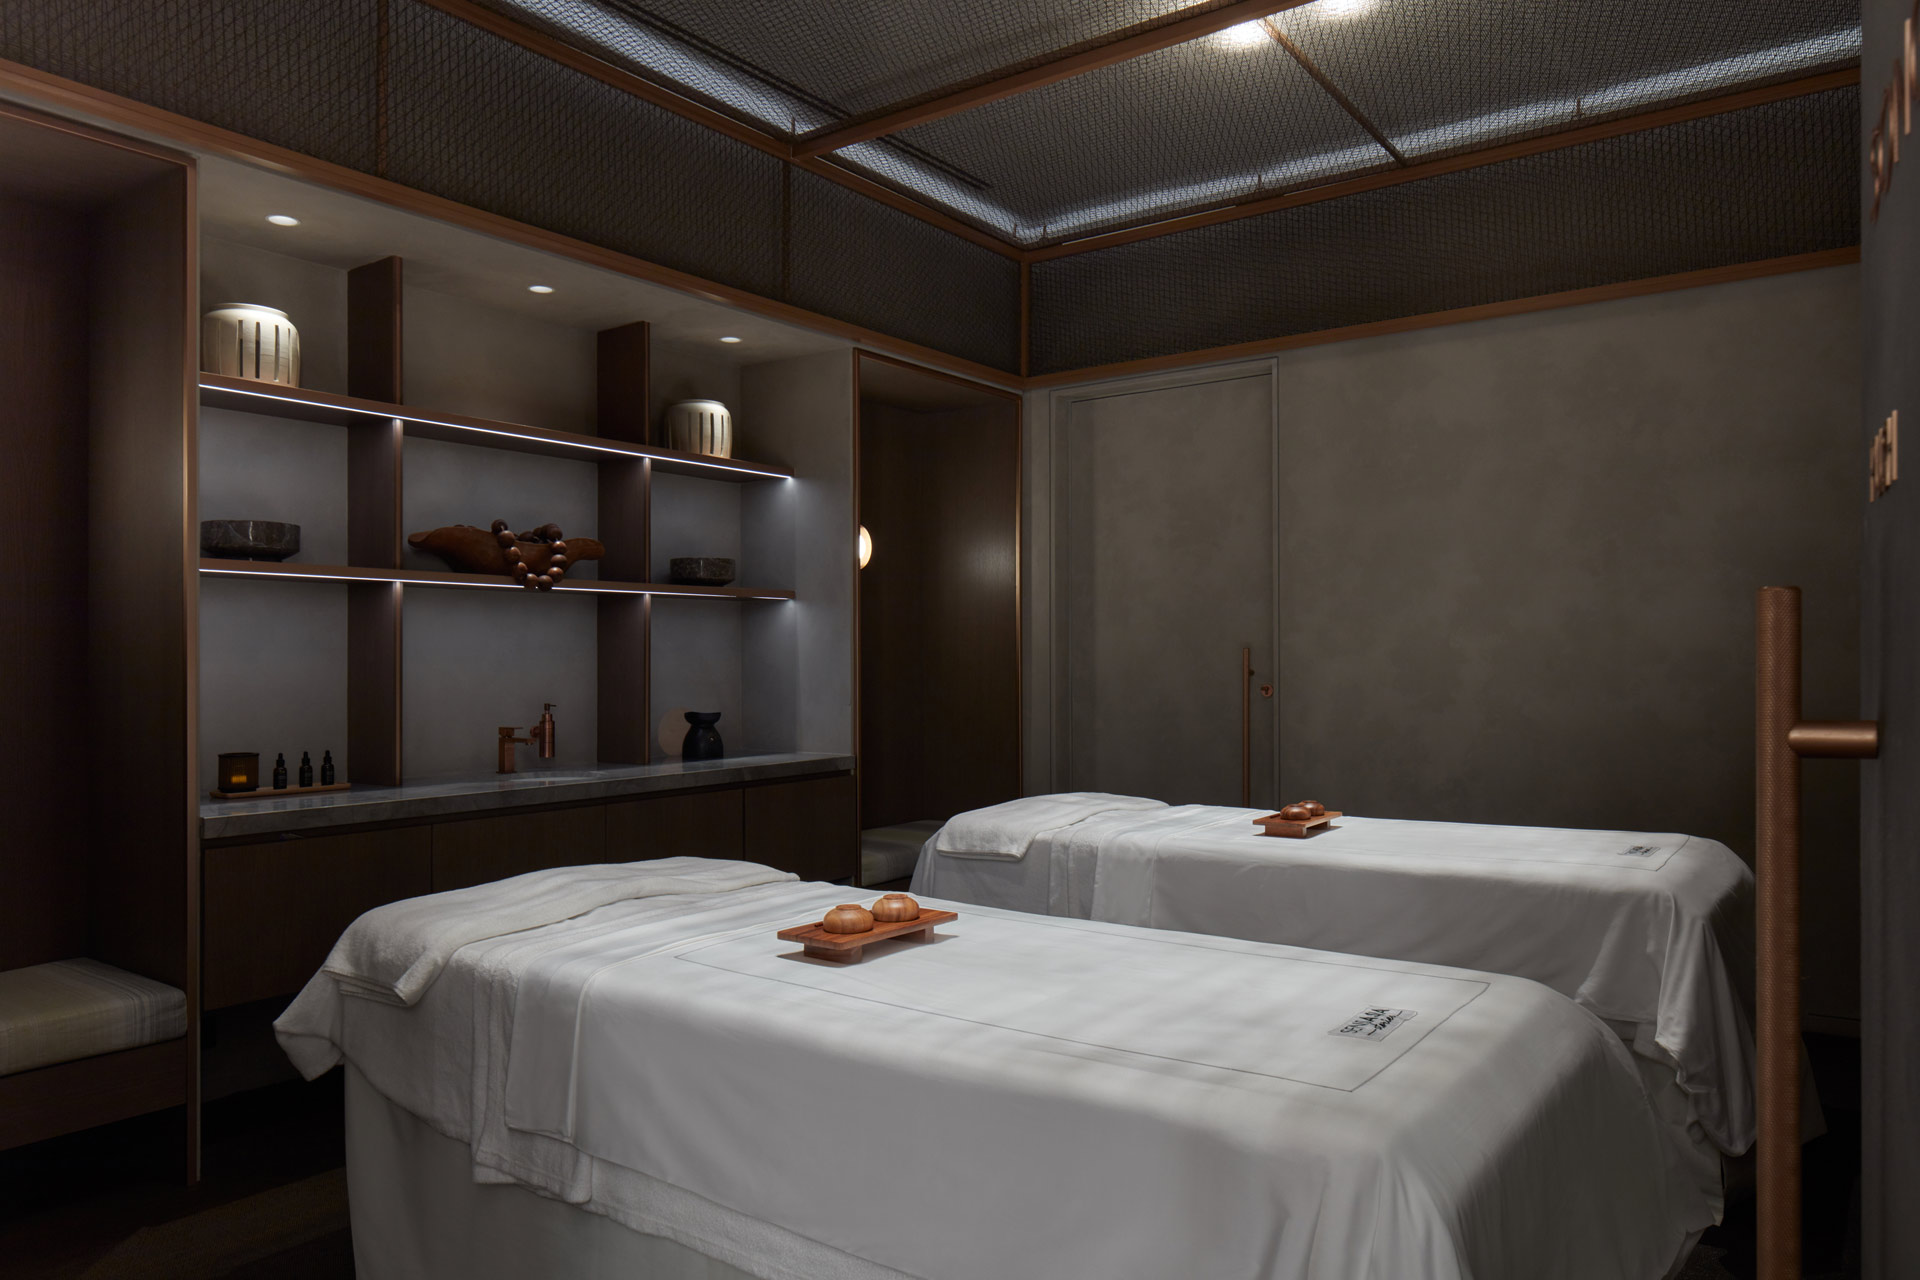 Sensasia Spa at Kempinski Hotel in Dubai